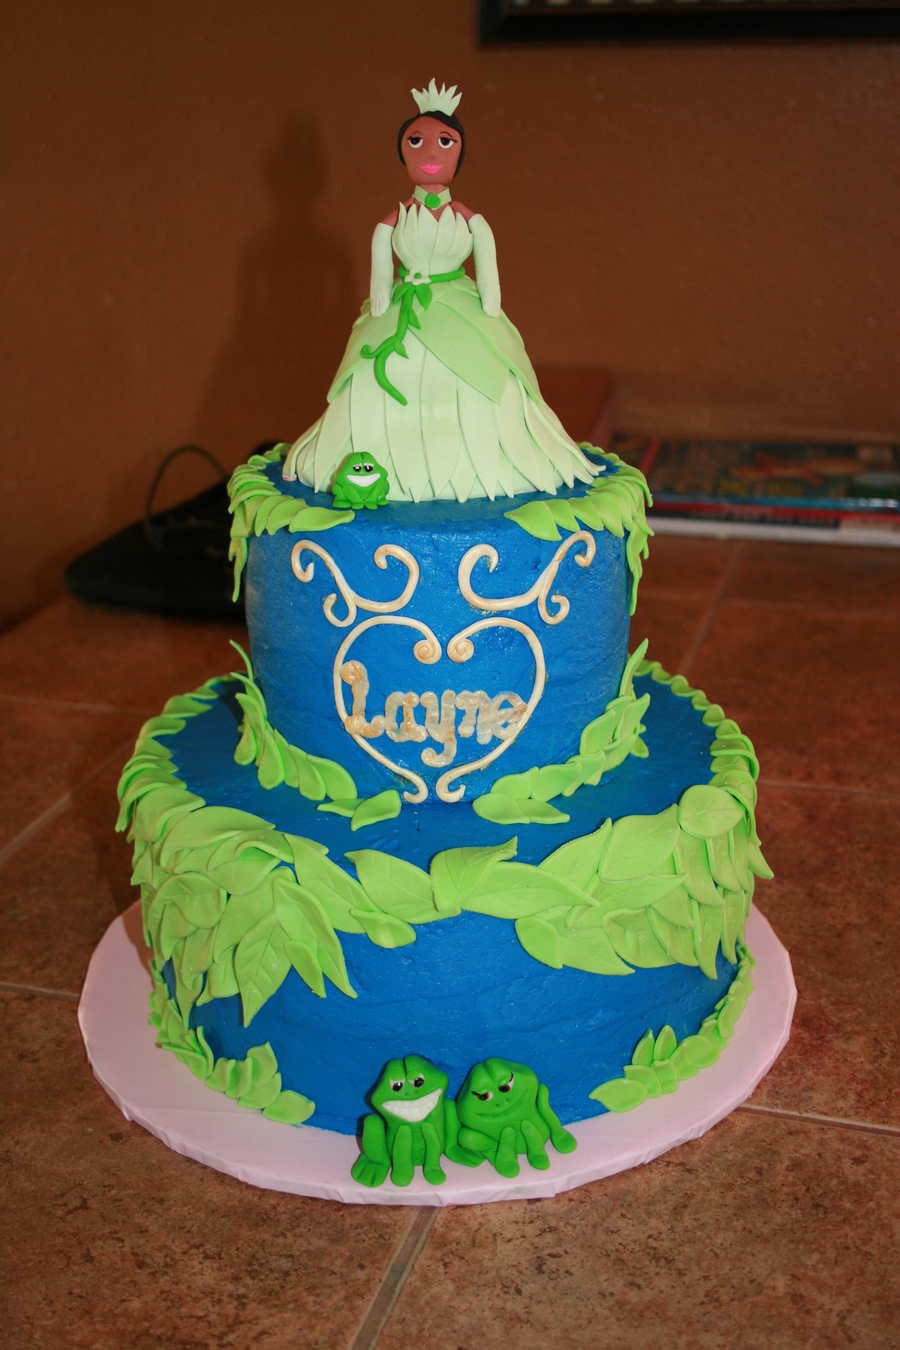 The Princess And The Frog on Cake Central